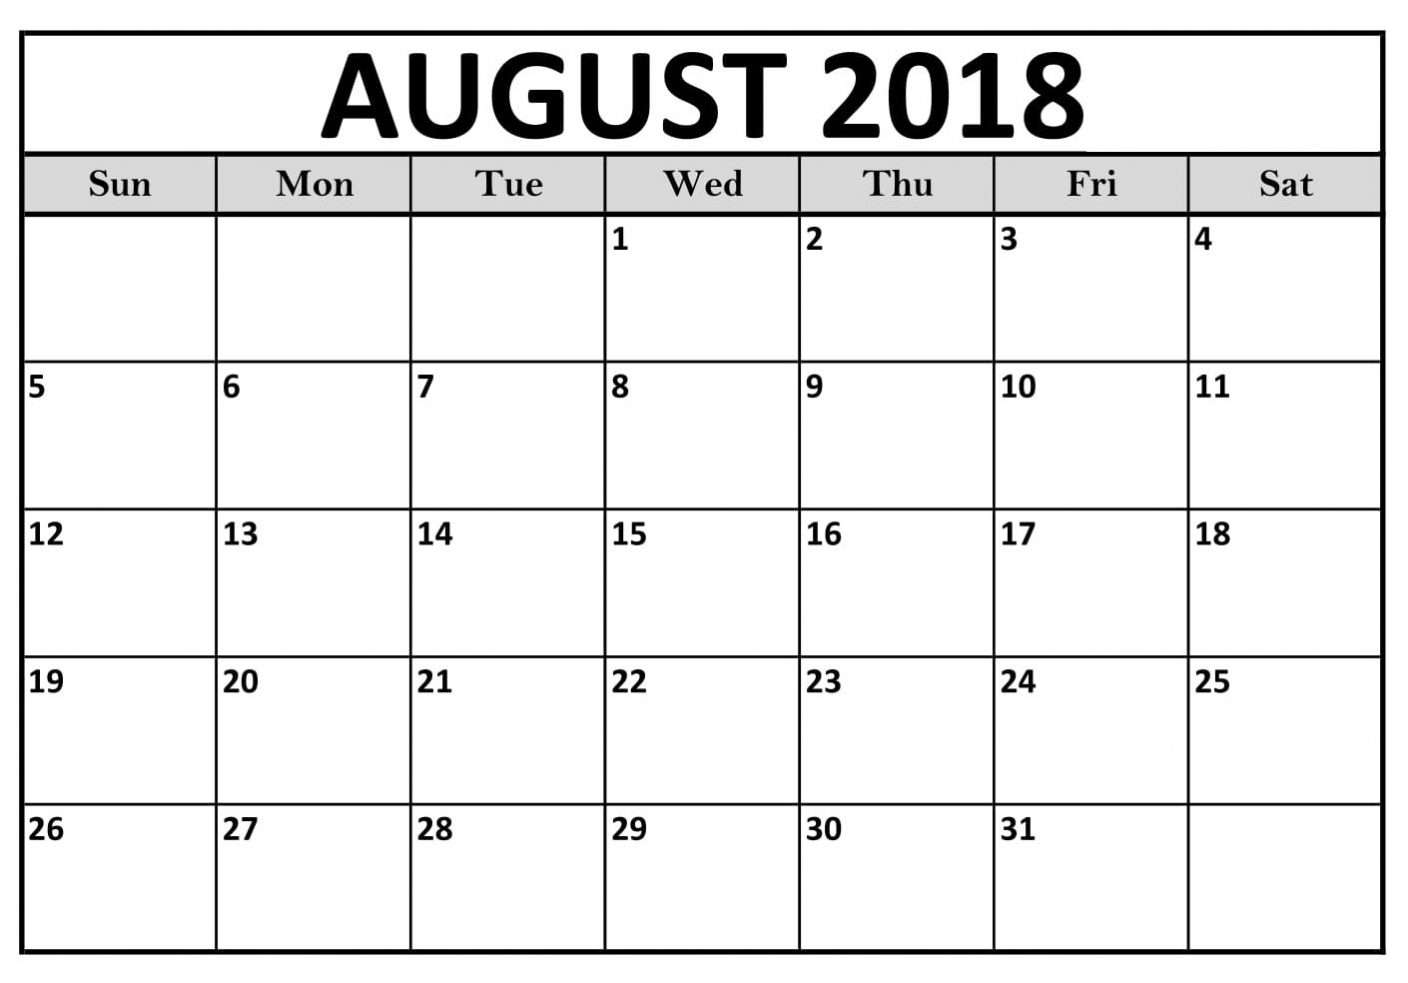 august 2018 calendar excel template task management template Calendar August 2018 Printable Worksheets erdferdf